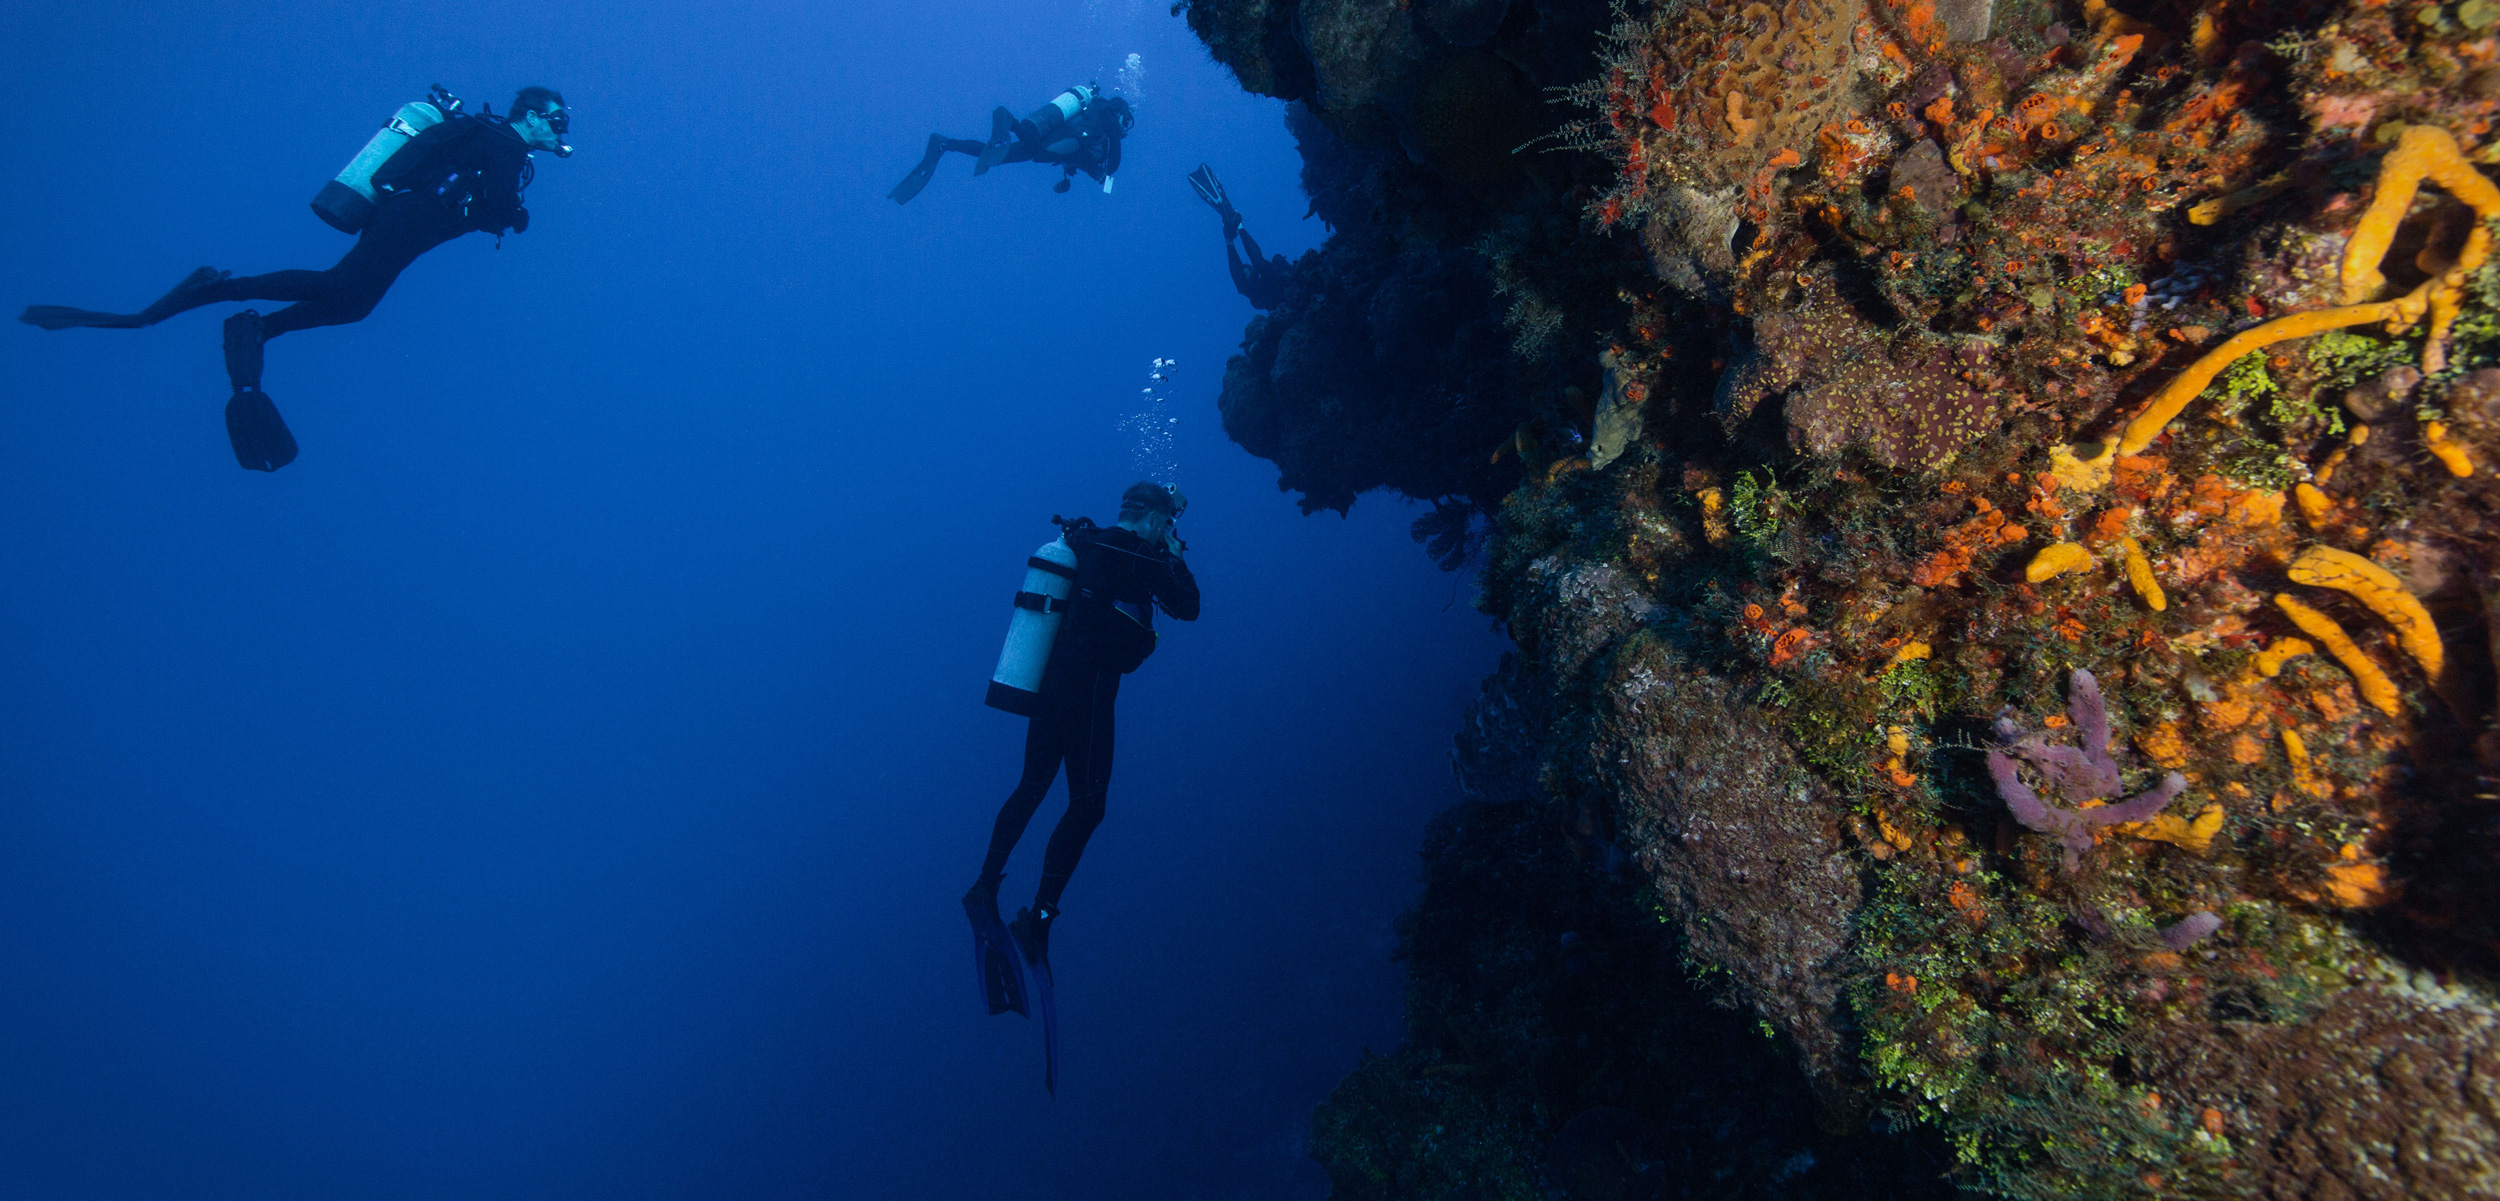 scuba divers exploring the reed off the coast of Cozumel, Mexico